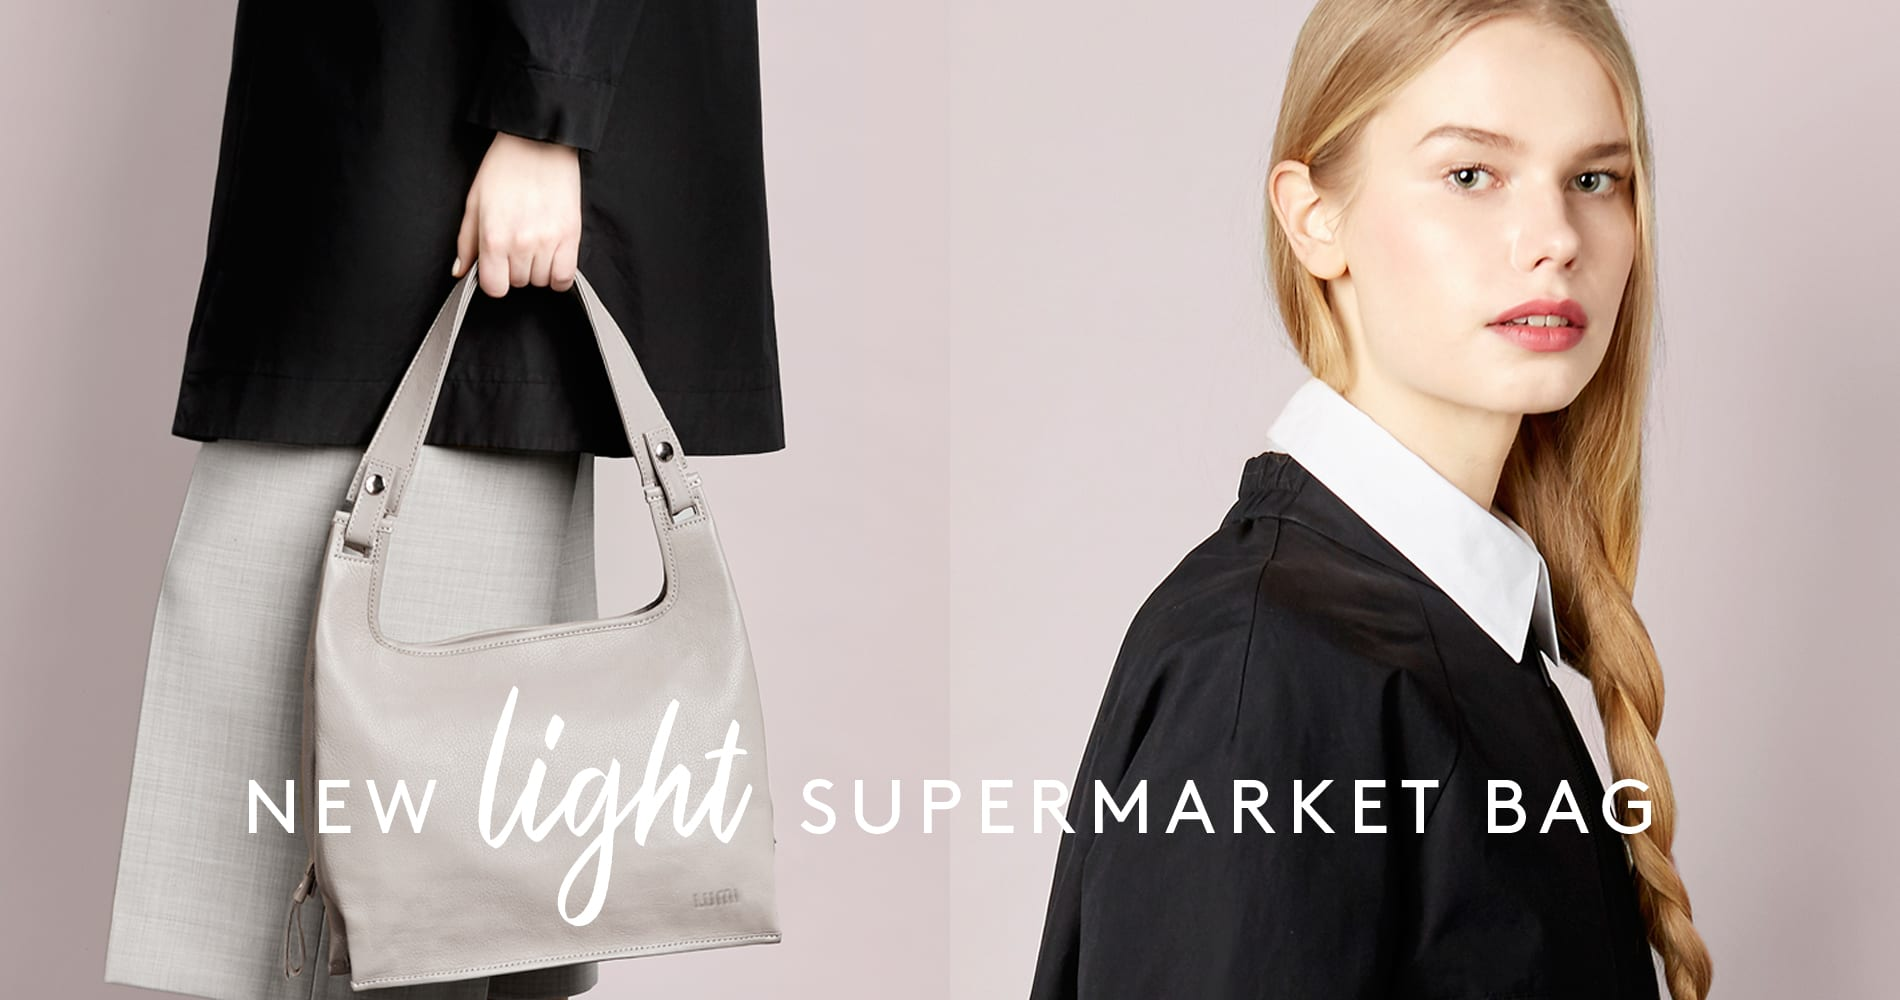 Introducing New Supermarket Bag Light in lovely soft and smooth lightweight leather.